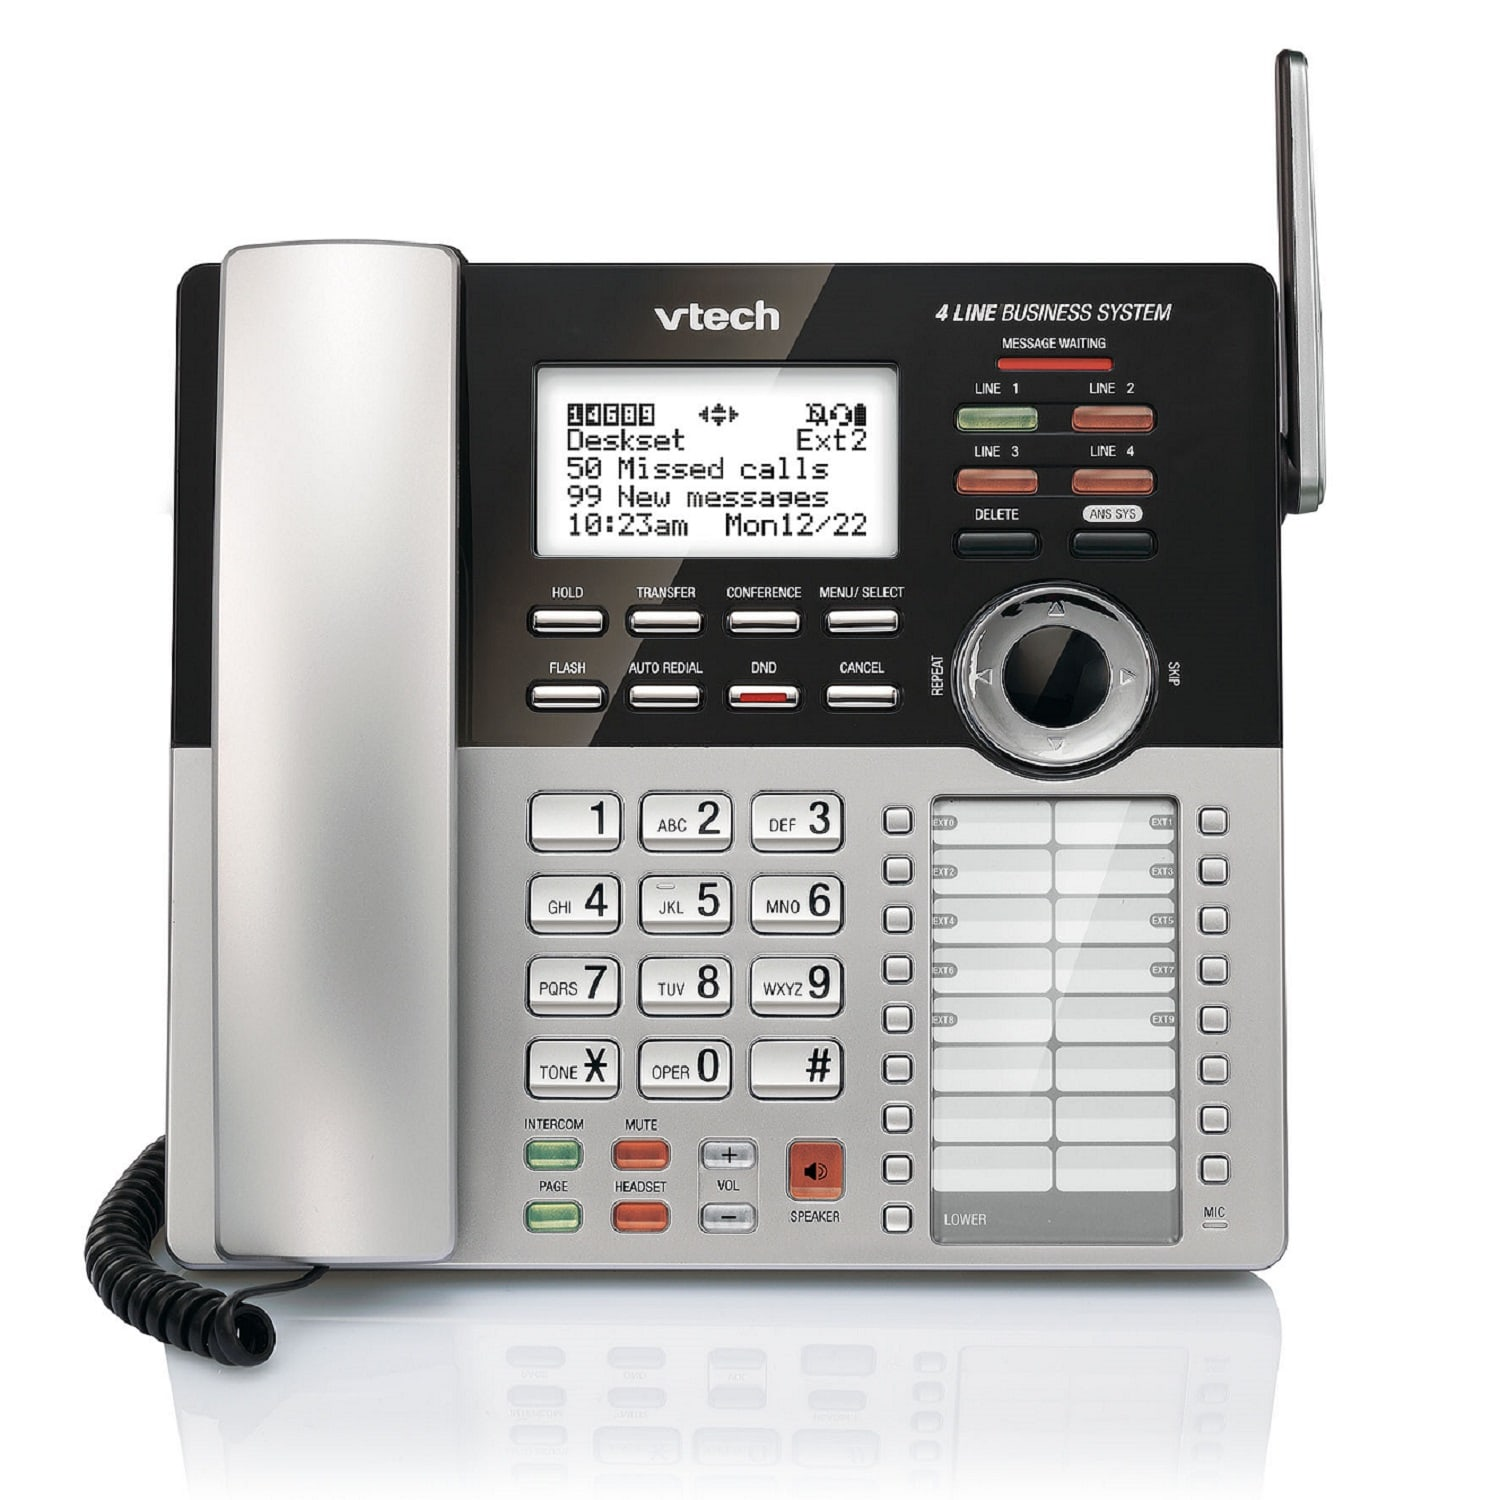 4 Line Small Business Phone System Vtech Multi And Telephone Wiring Accessories Accessory Deskset For Cm18445 Main Console